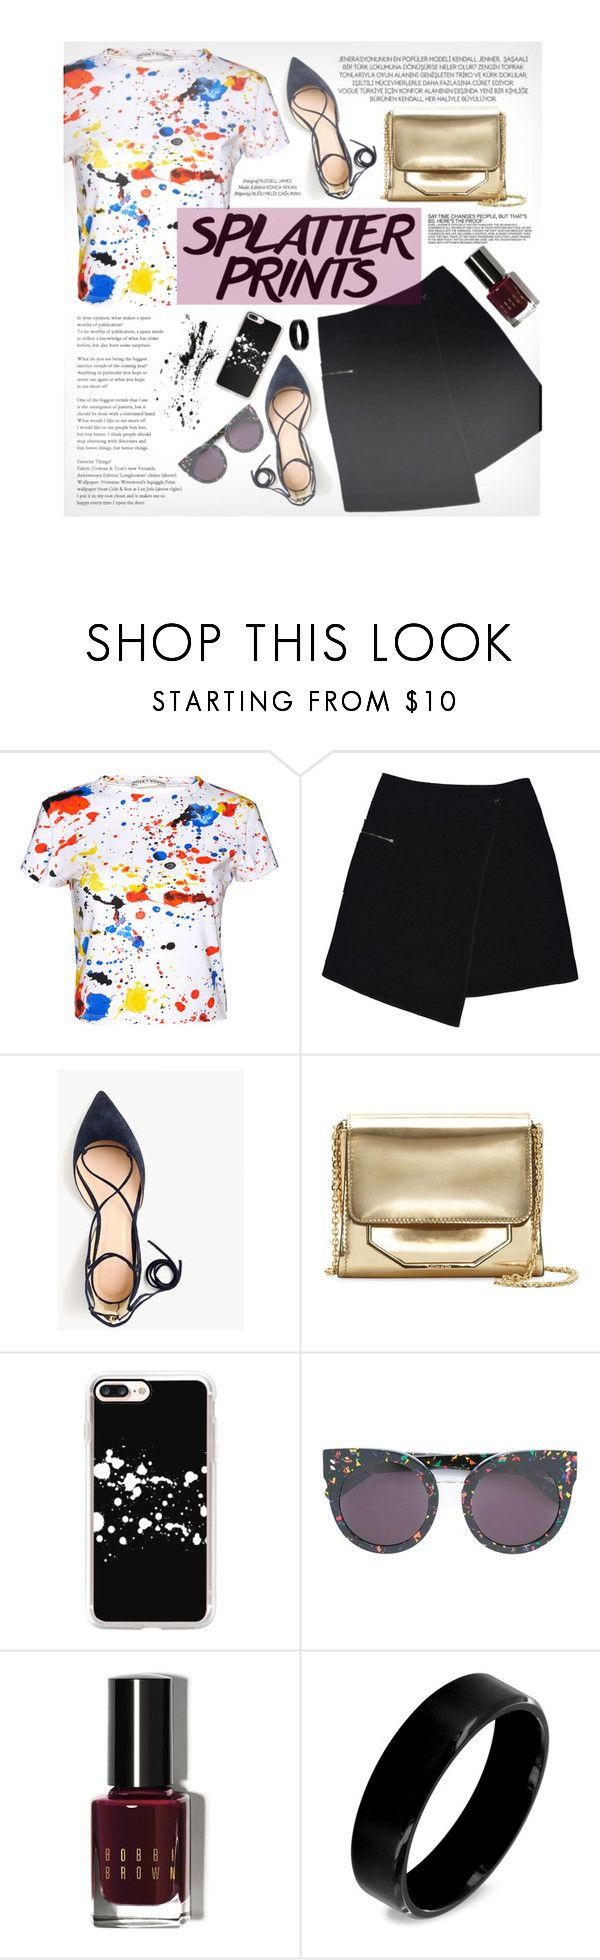 """""""Pop of color"""" by ladrianag ❤ liked on Polyvore featuring xO Design, Alice + Olivia, MARC CAIN, J.Crew, Louise et Cie, Casetify, STELLA McCARTNEY, Bobbi Brown Cosmetics, West Coast Jewelry and Chanel"""